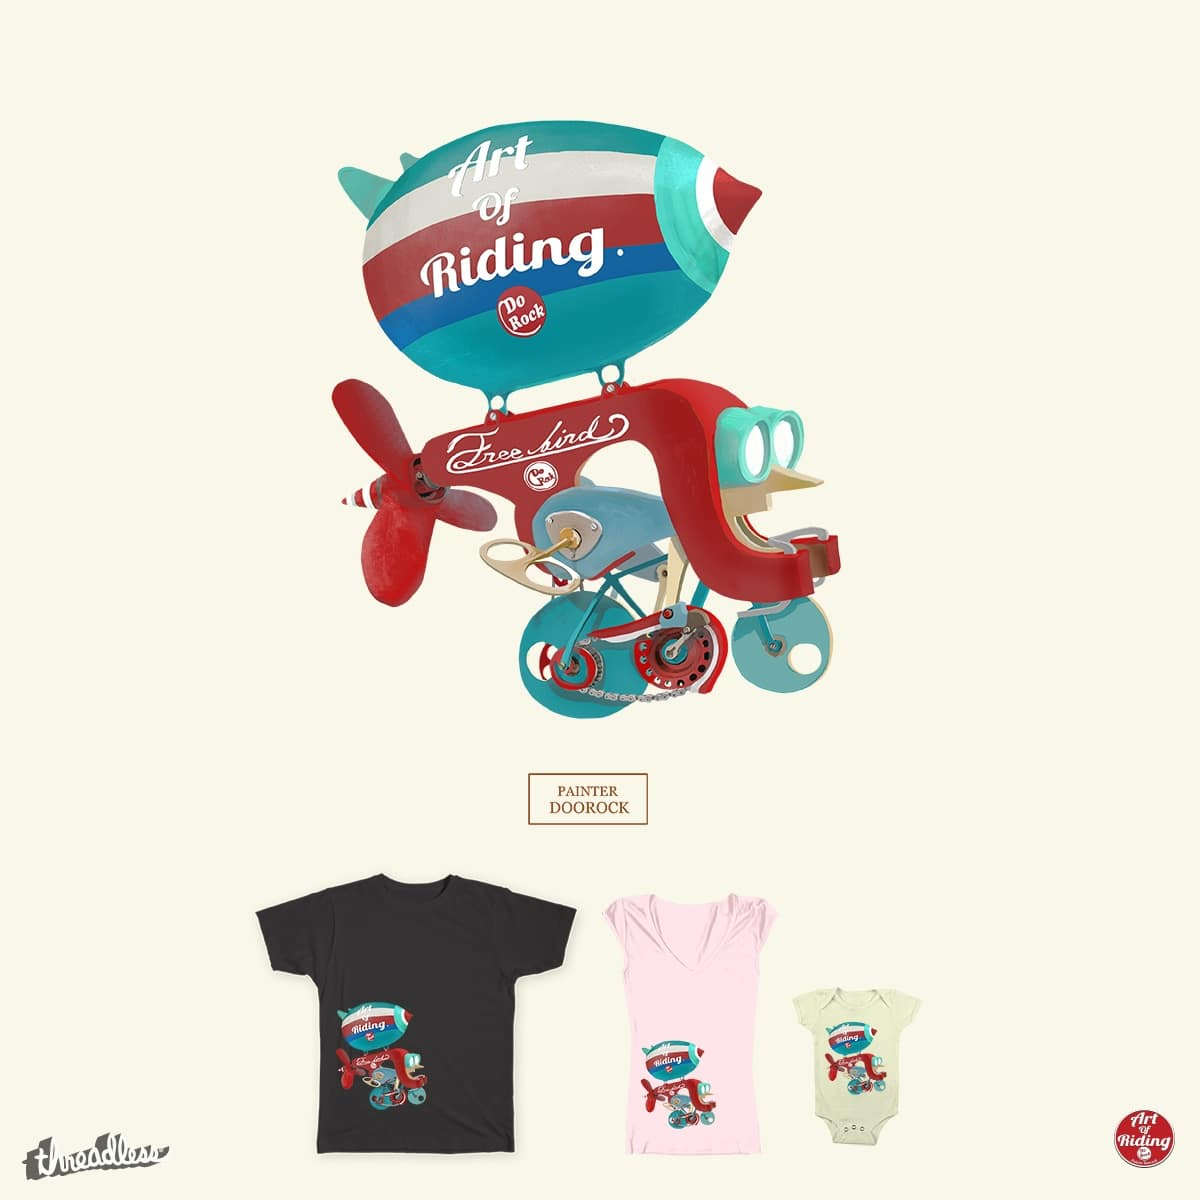 Beyond the Road by doorocky on Threadless